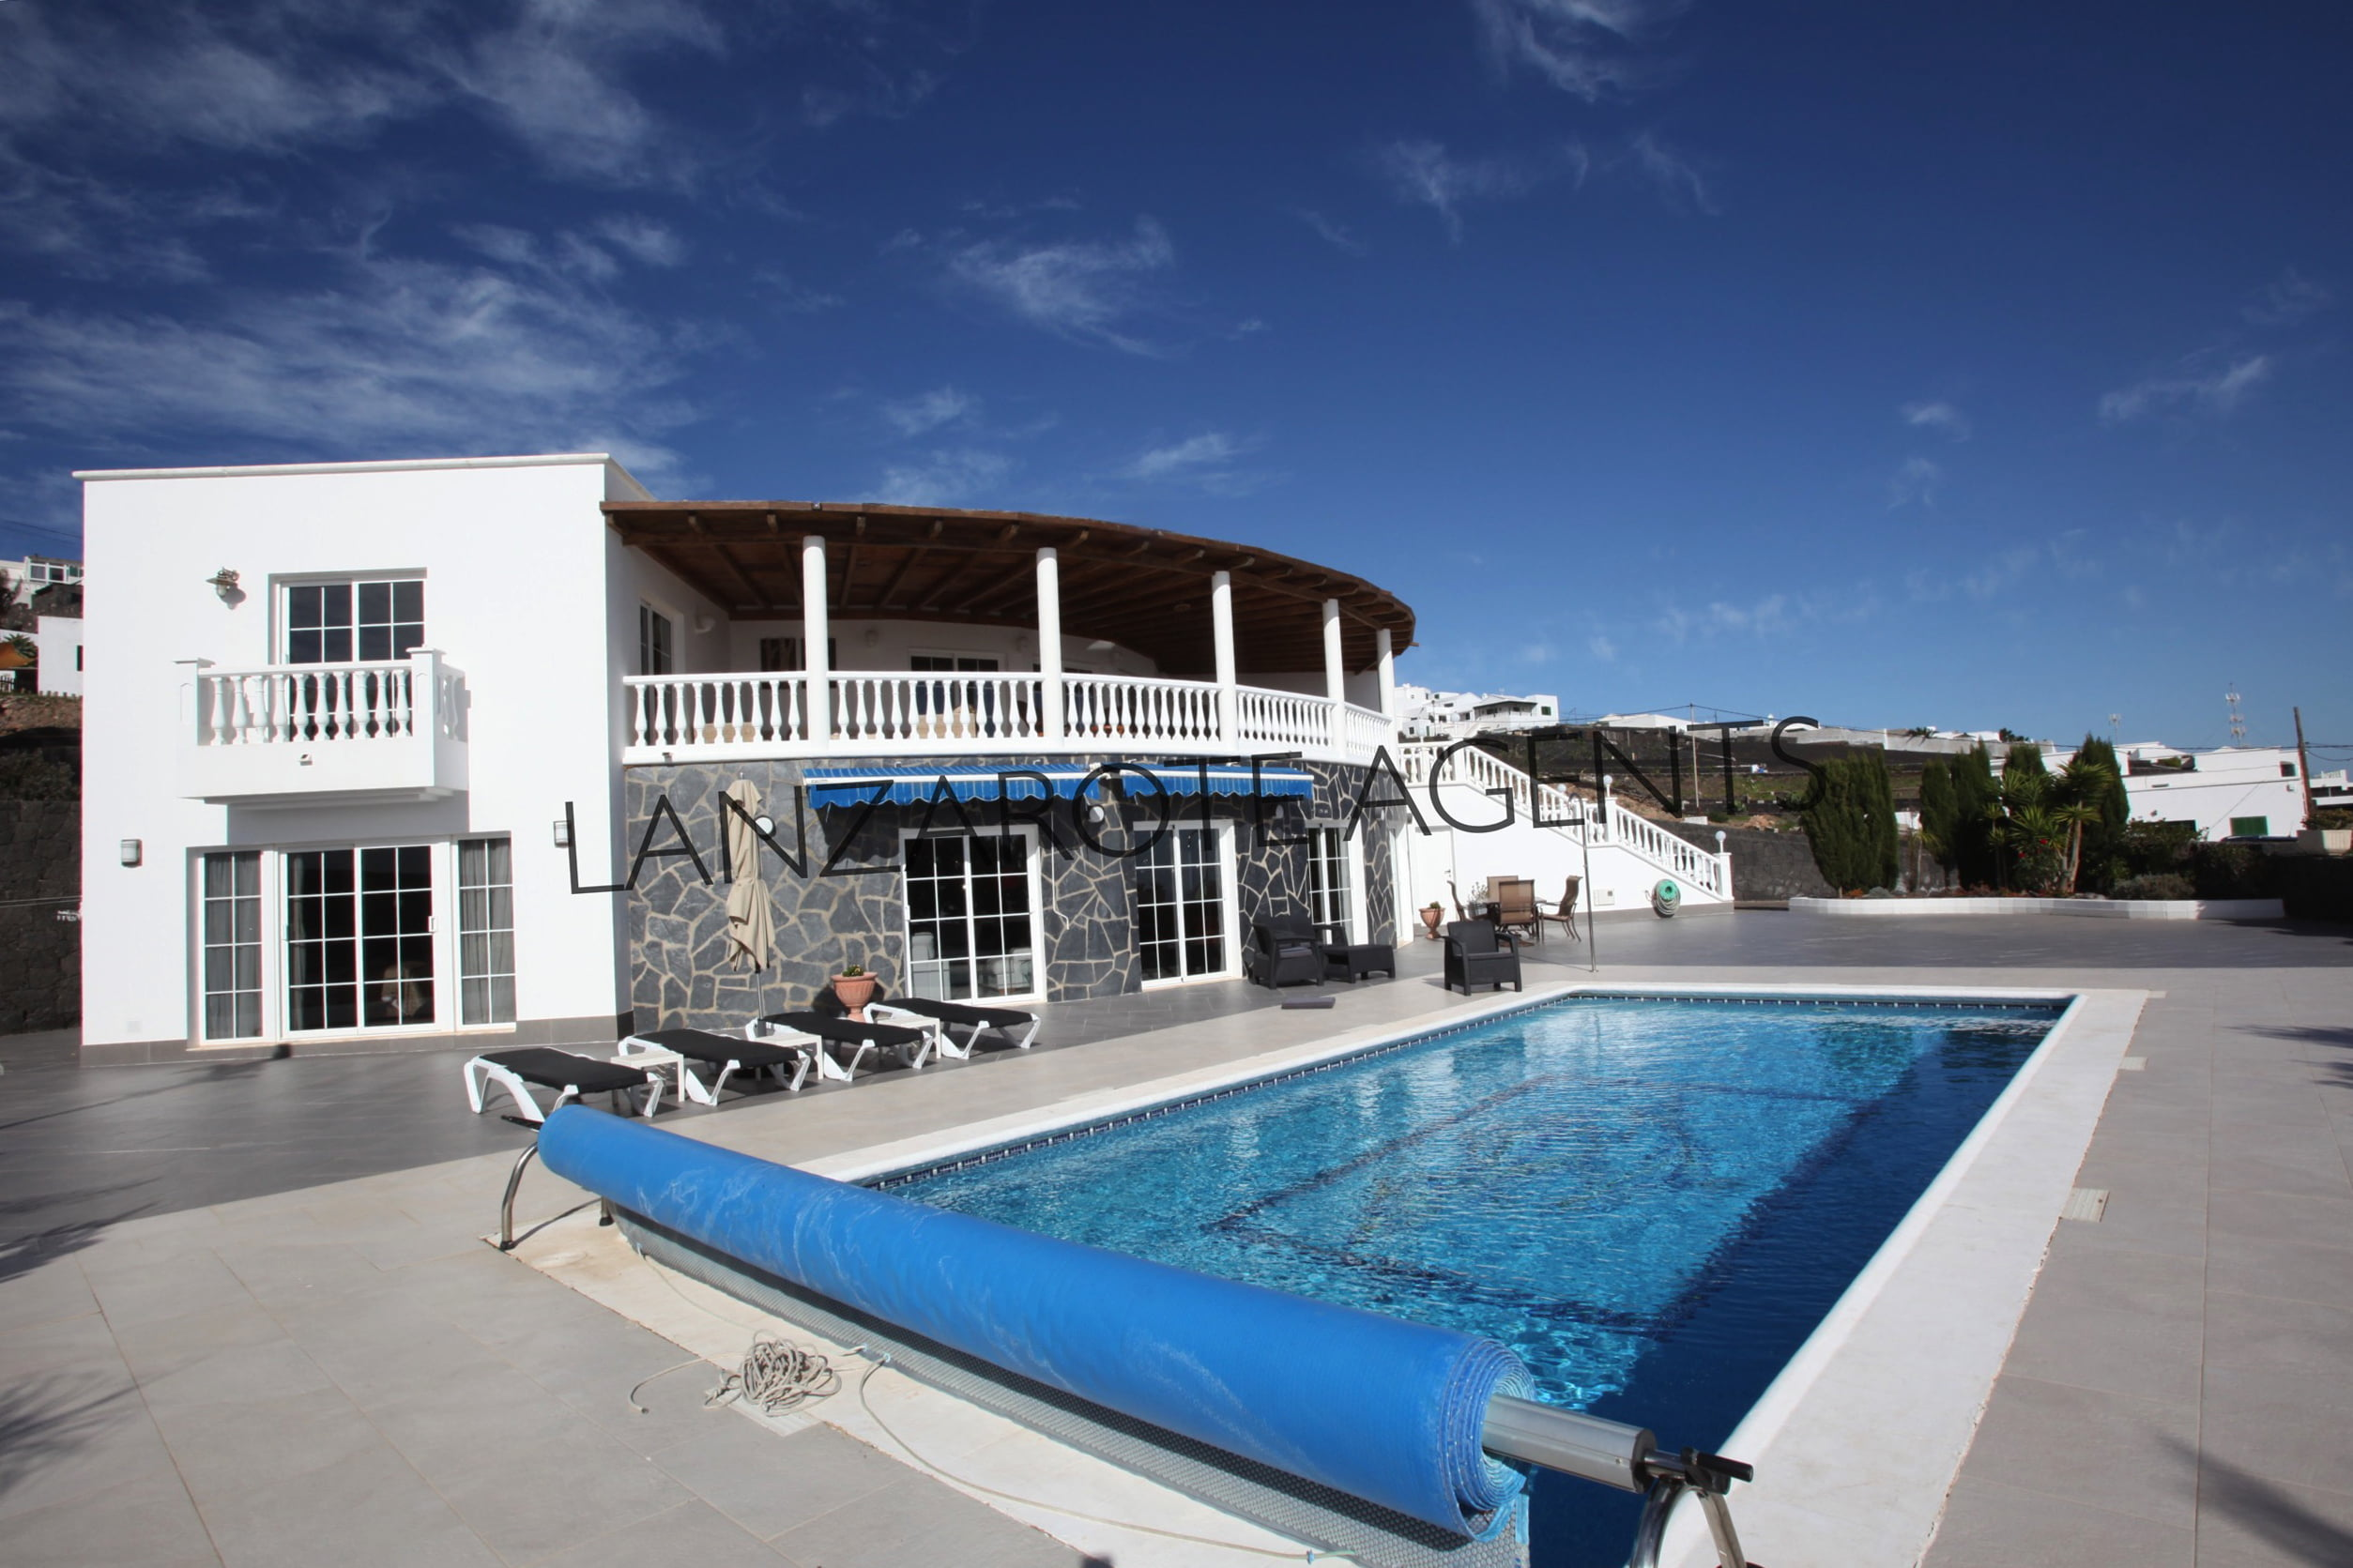 NOT TO BE MISSED THIS WONDERFUL LUXURY VILLA IN TIAS WITH FANTASTIC PANORAMIC SEA VIEWS